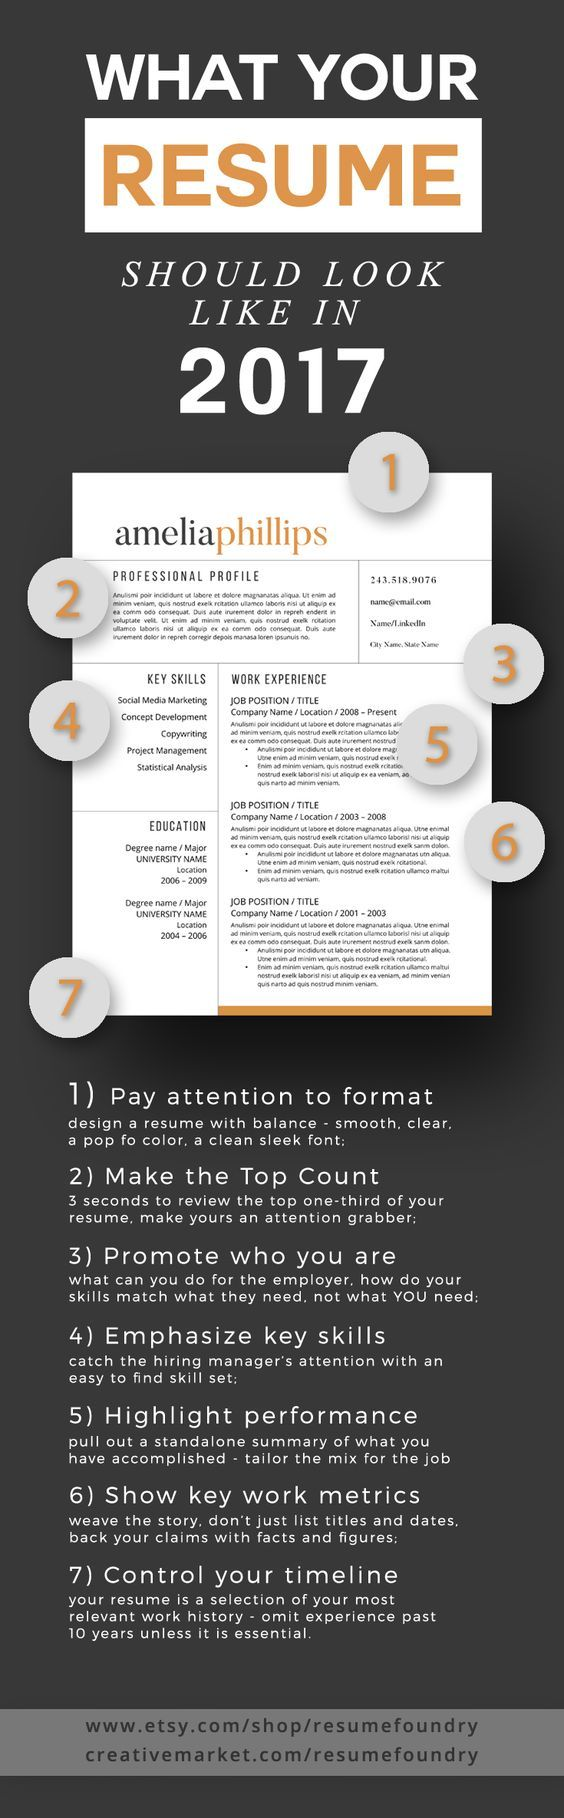 Resume Tips What Your Resume Should Look Like In 2017 Misc